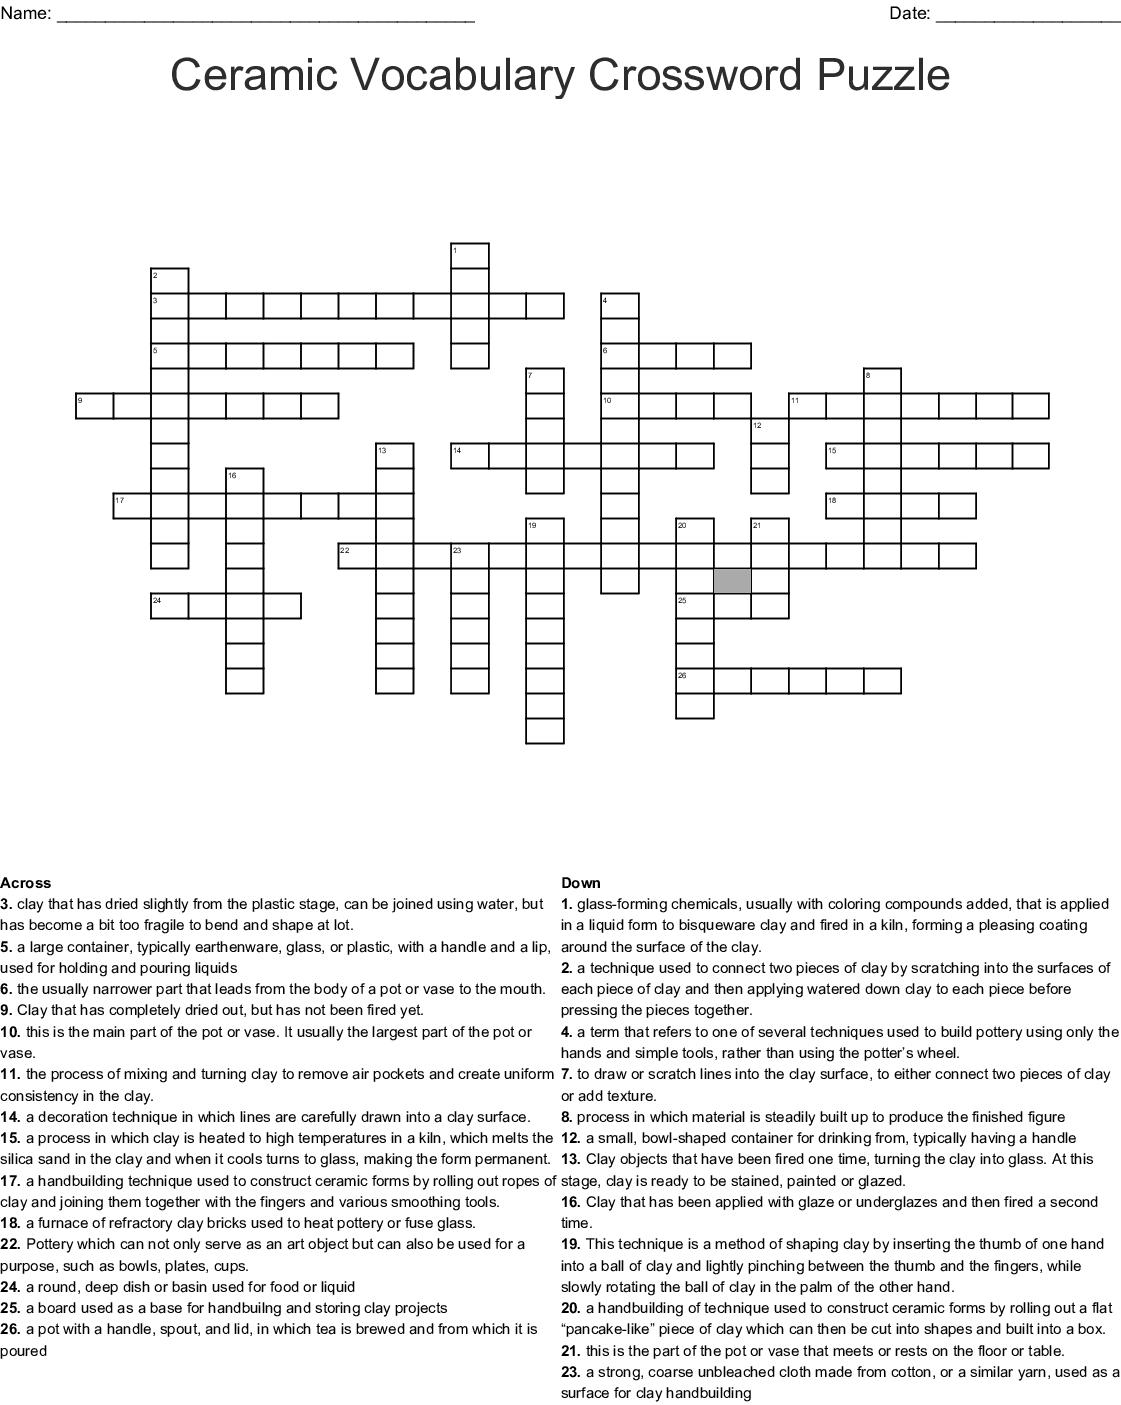 Ceramic Vocabulary Crossword Puzzle